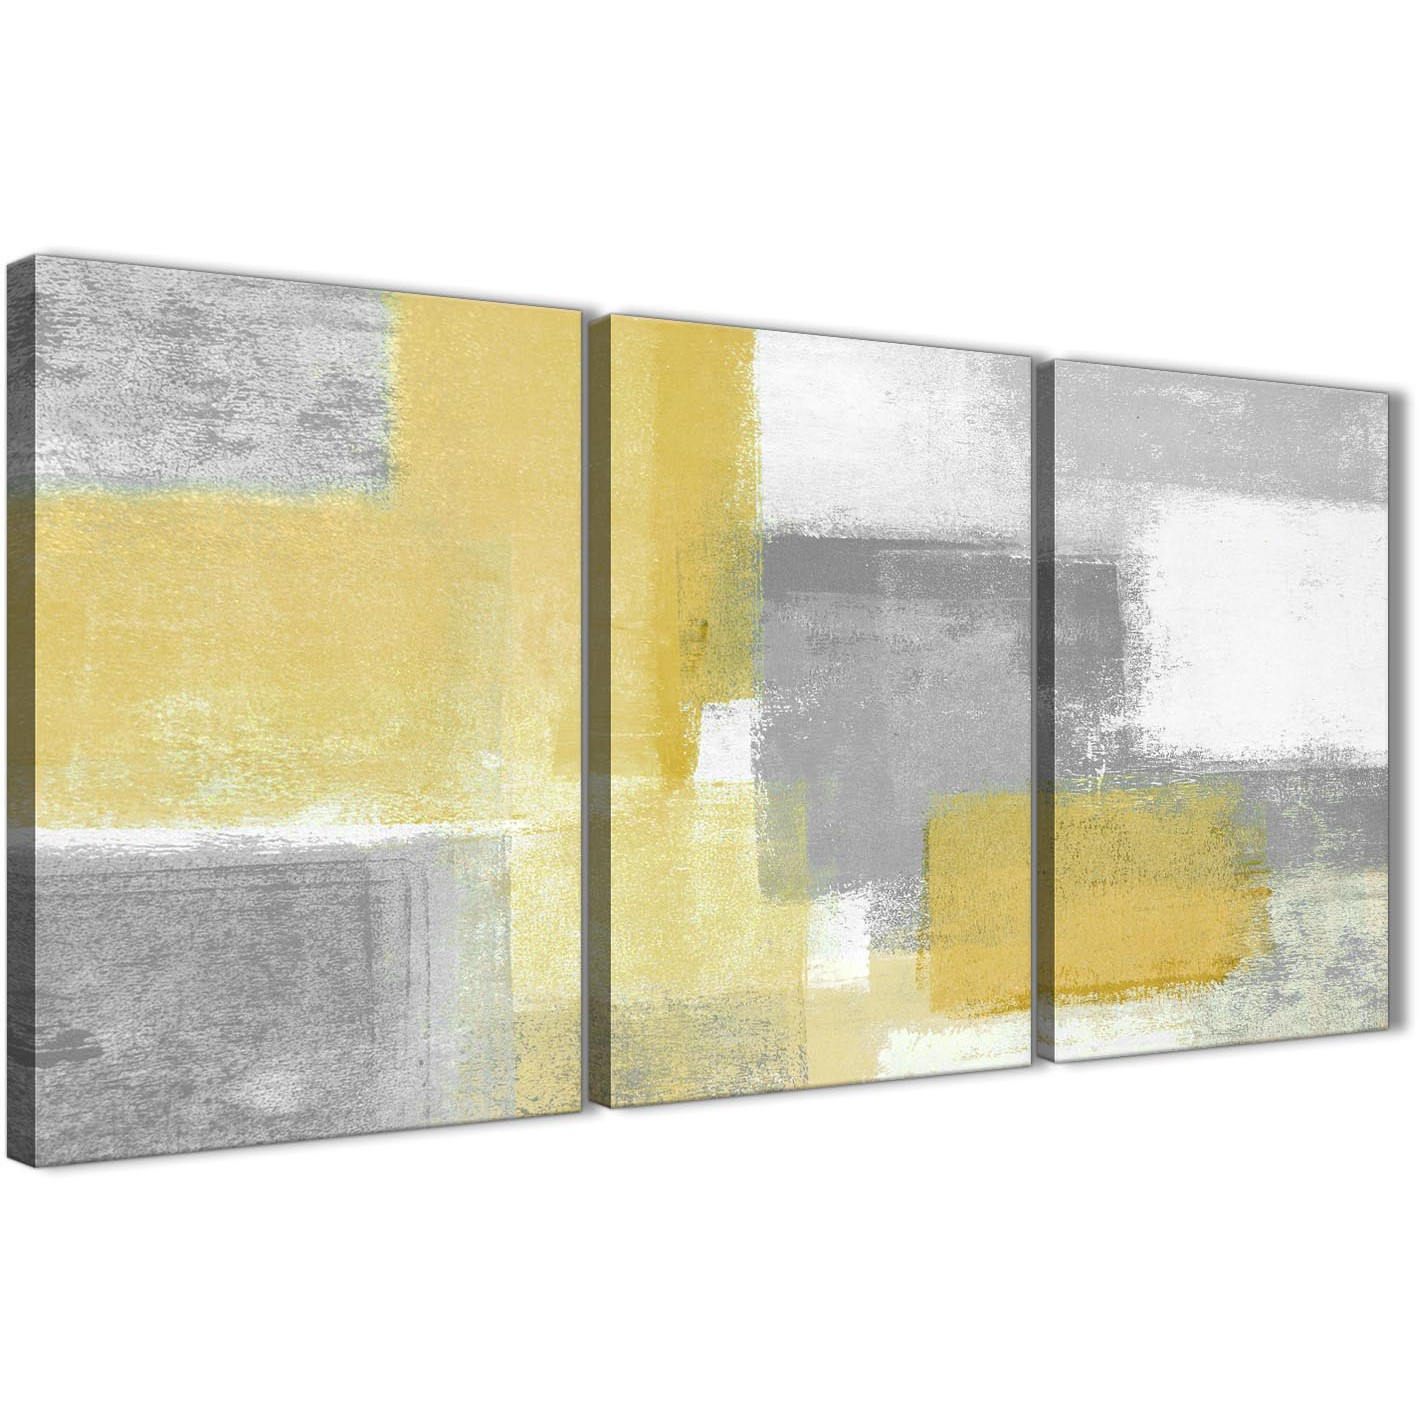 Elegant Next Set Of 3 Piece Mustard Yellow Grey Bedroom Canvas Wall Art Decor    Abstract 3367 Display Gallery Item 1 ...